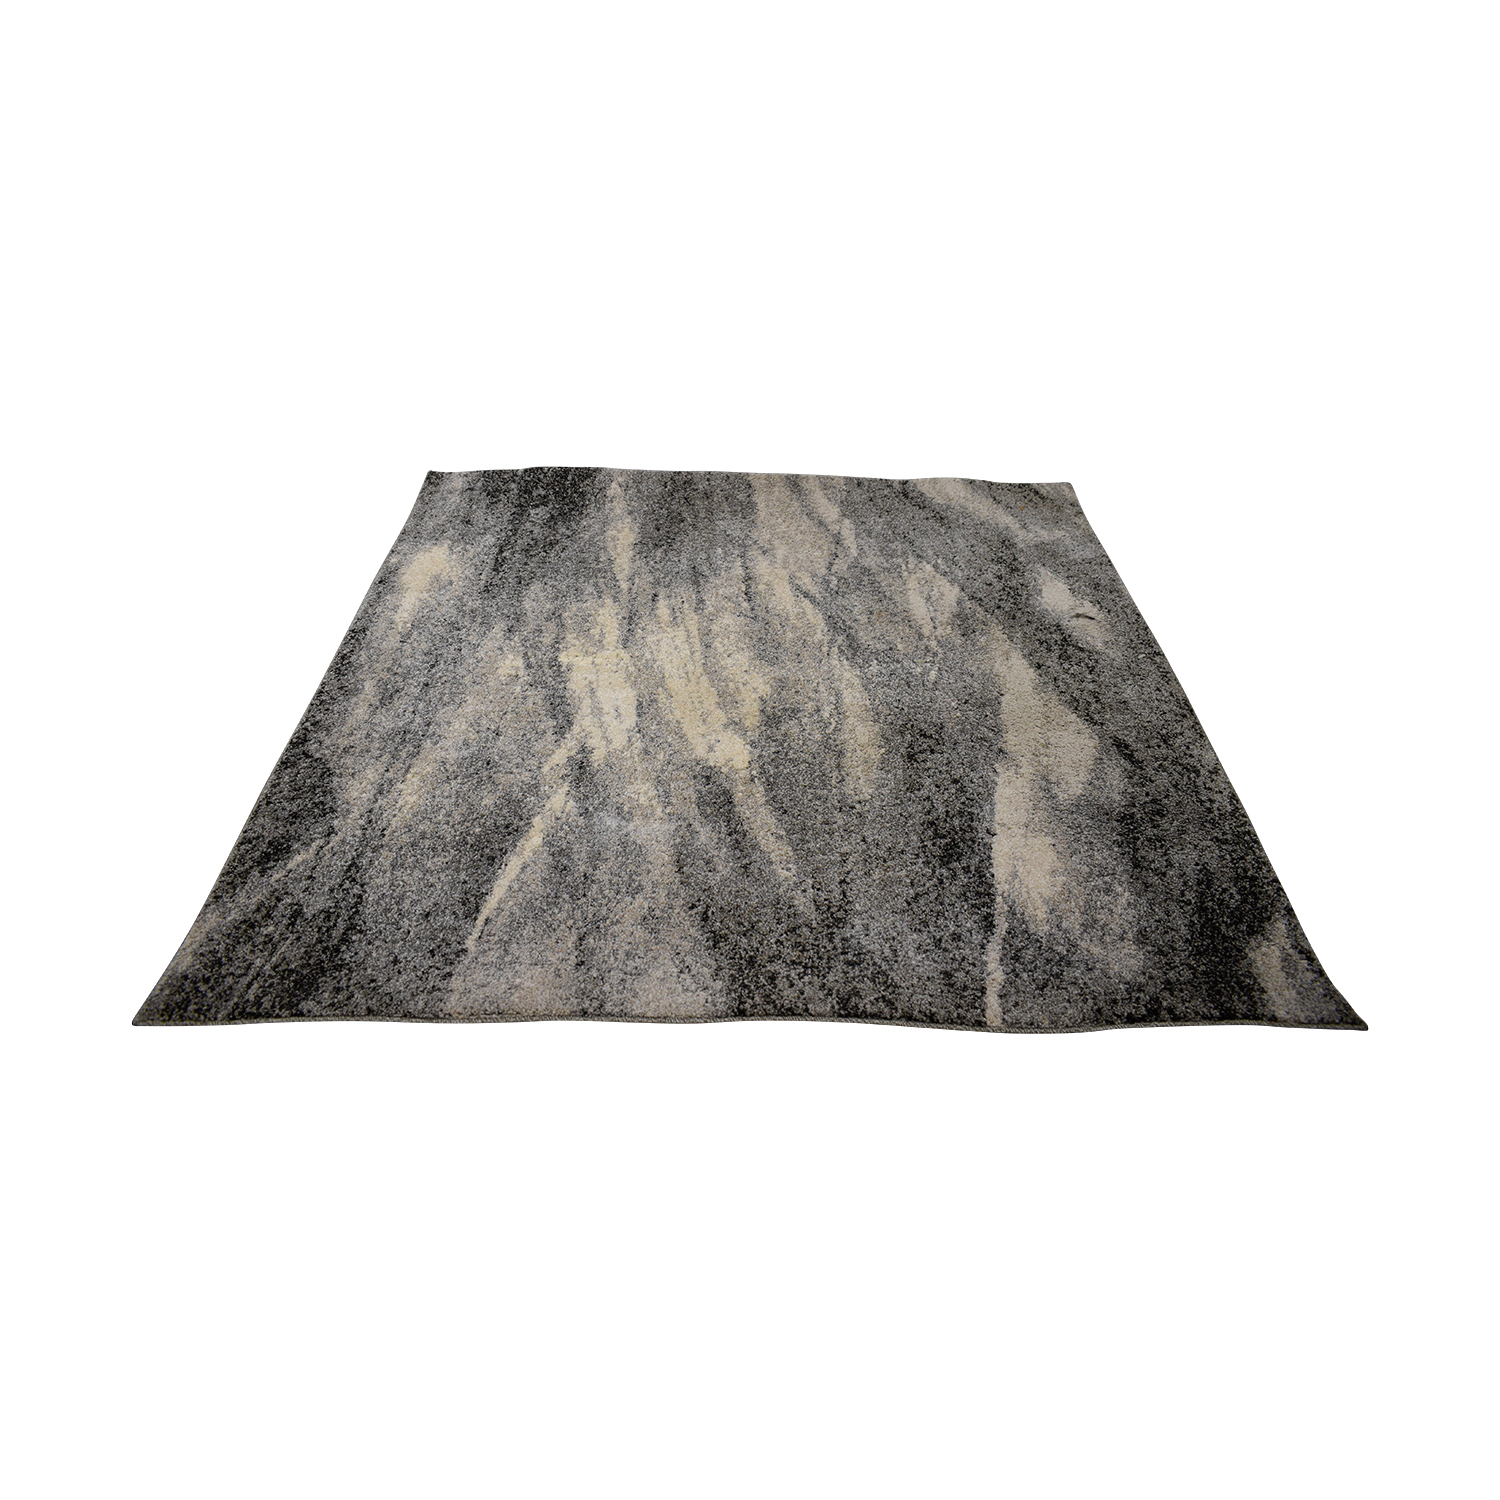 Safavieh Grey White and Black Rug Safavieh